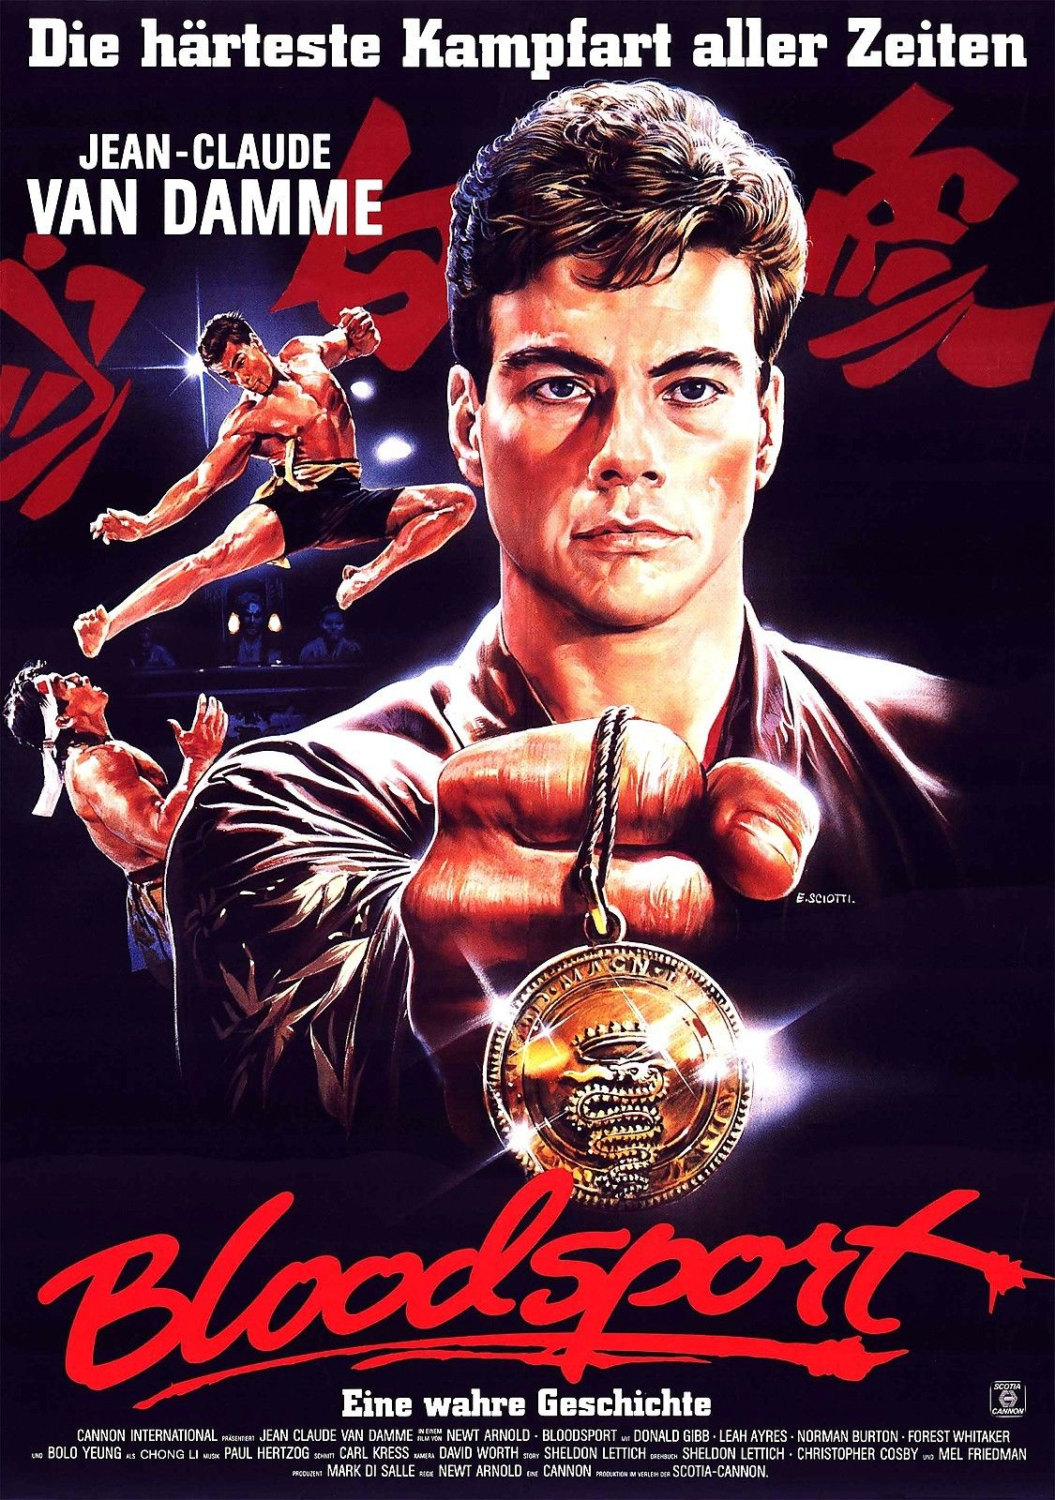 BLOODSPORT Movie Poster Jean-Claude Van Damme | Etsy